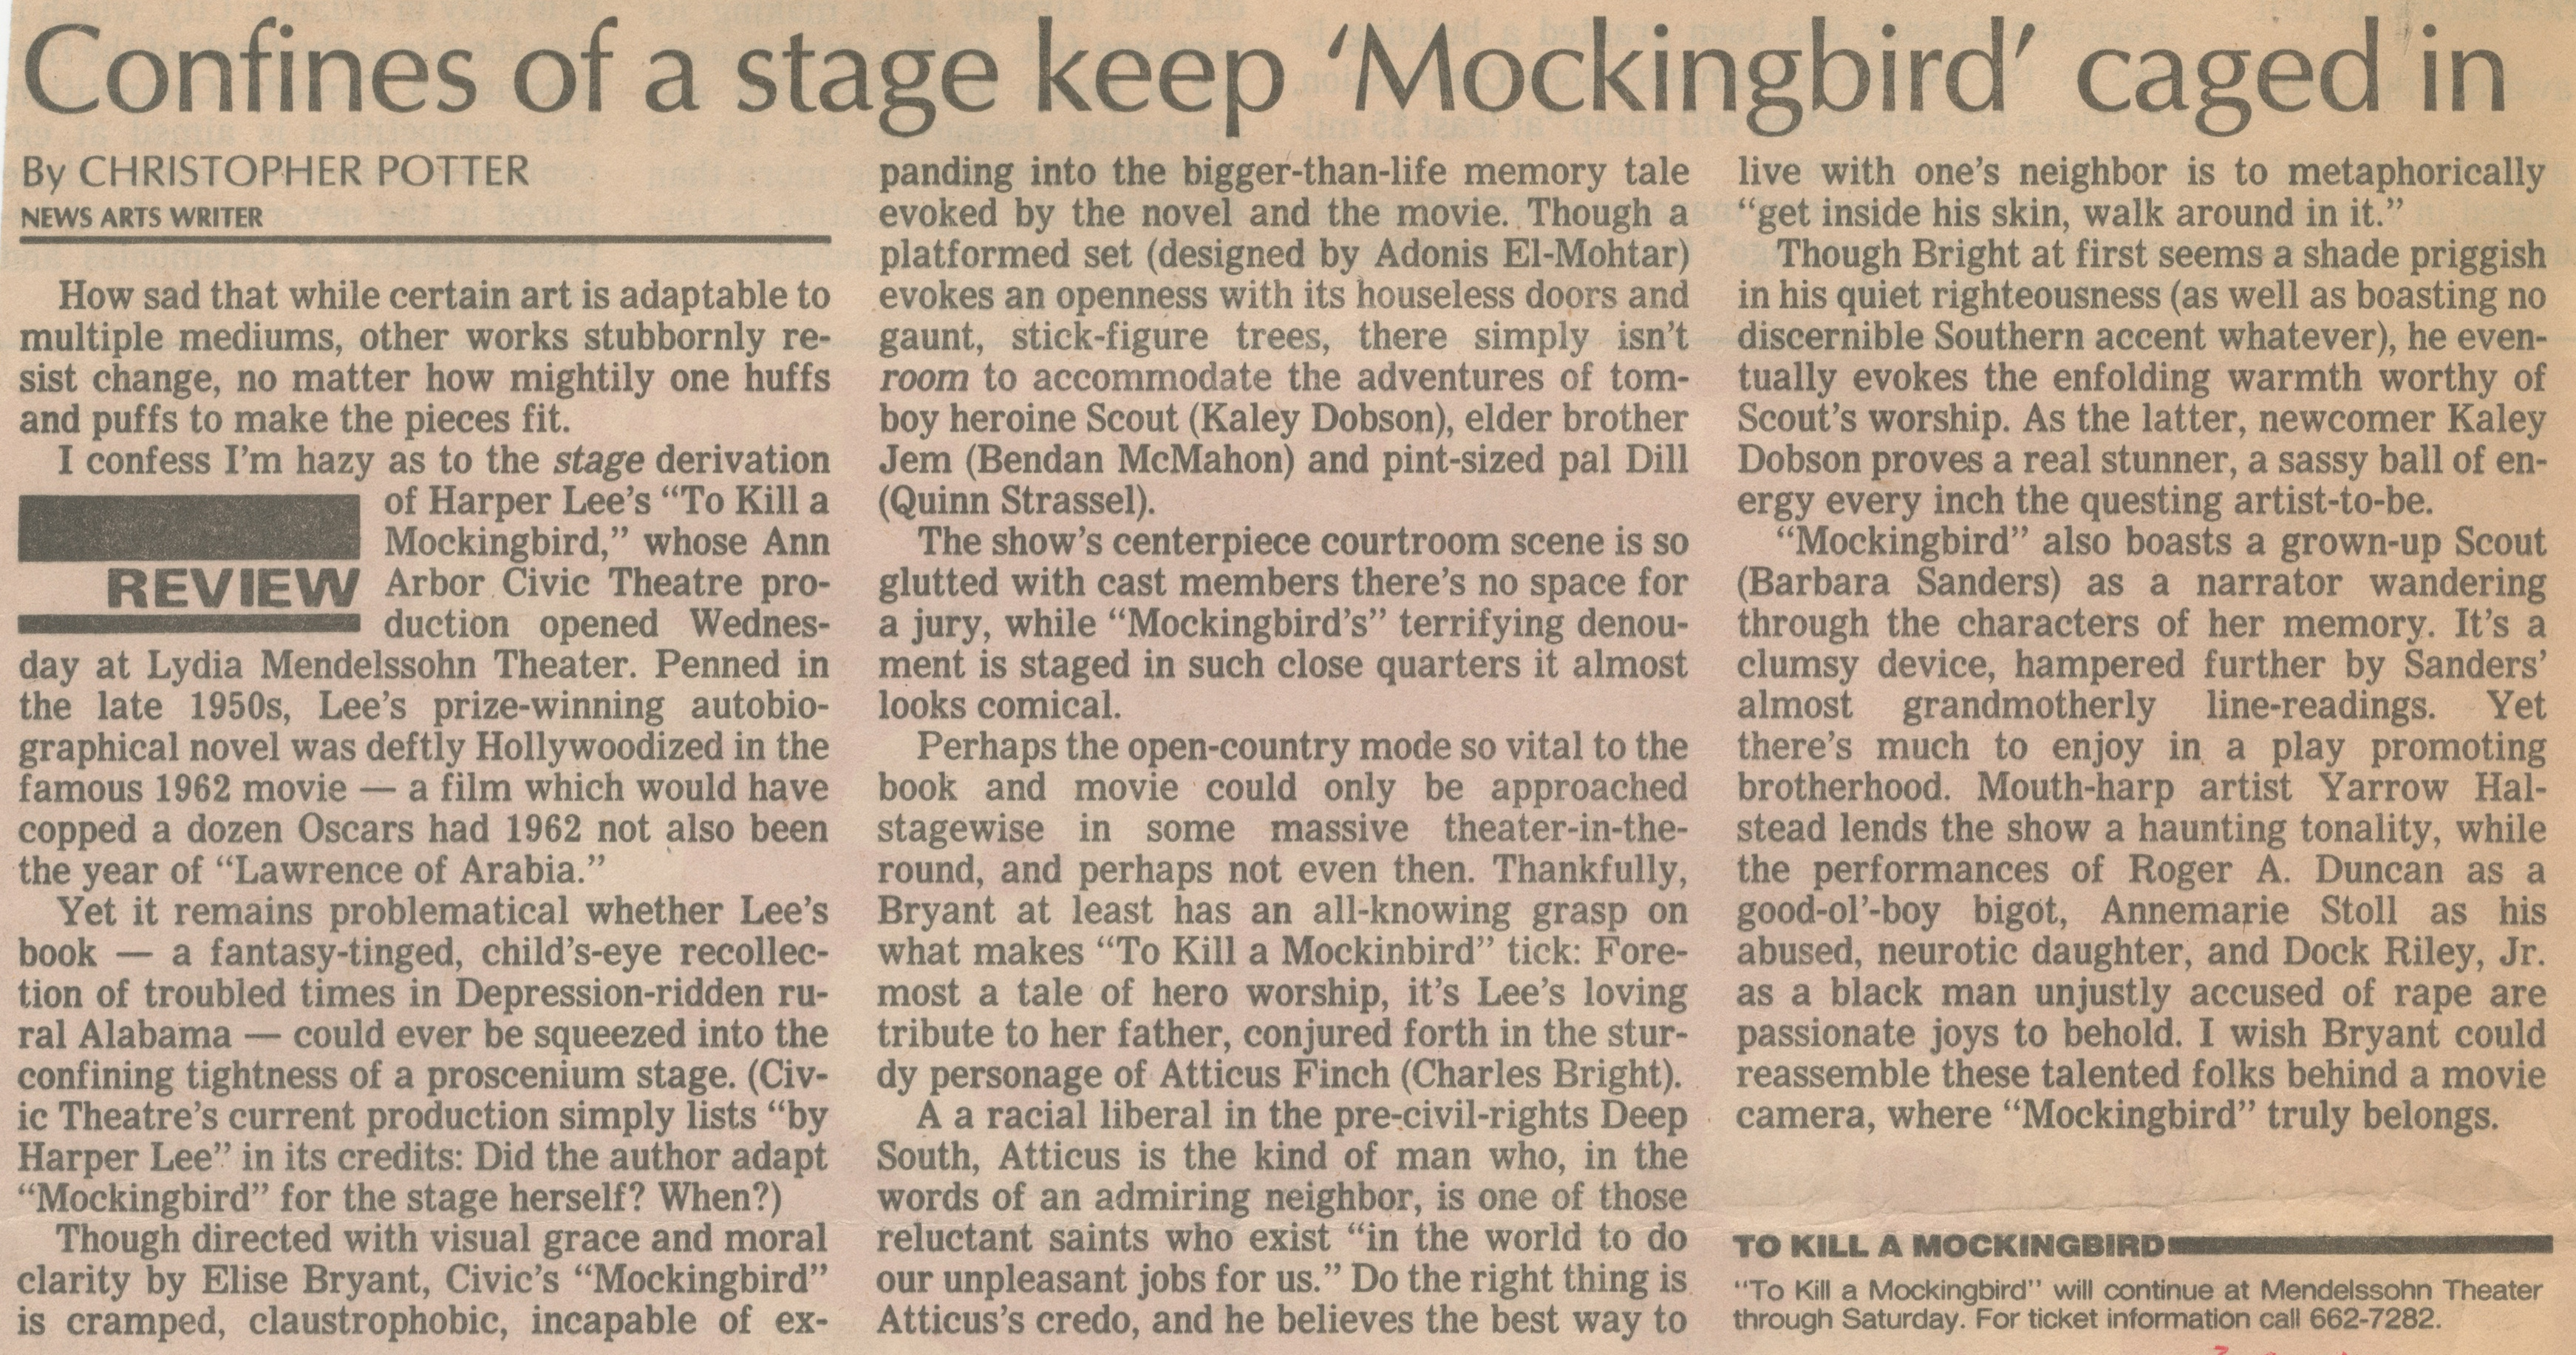 Confines Of A Stage Keep 'Mockingbird' Caged In image